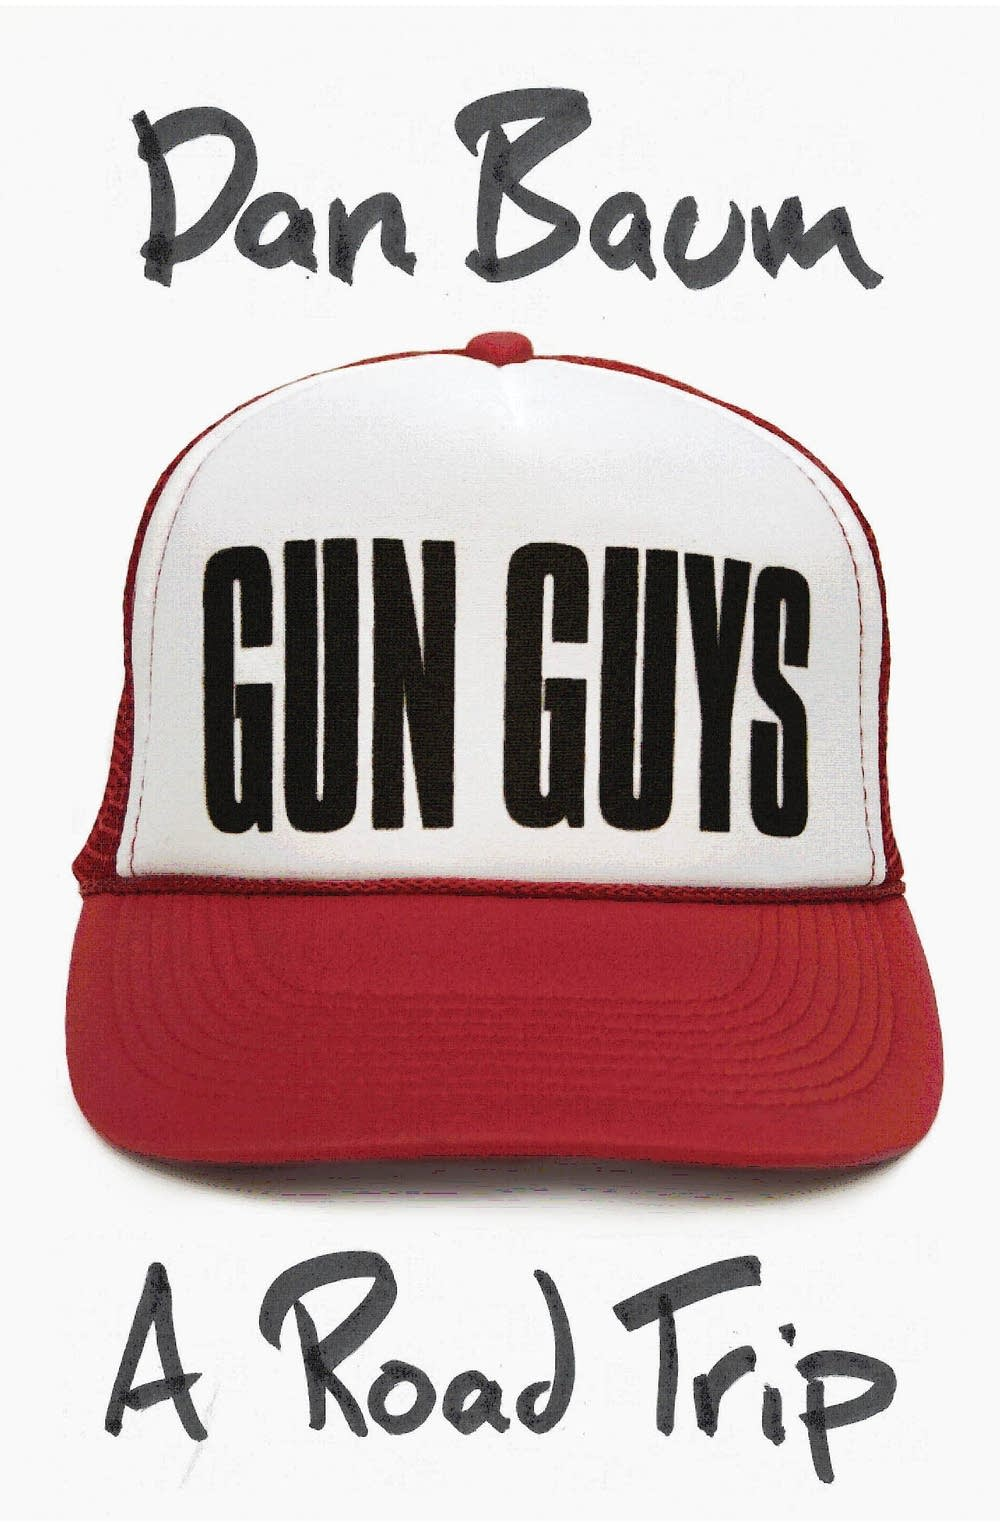 'Gun Guys' by Dan Baum